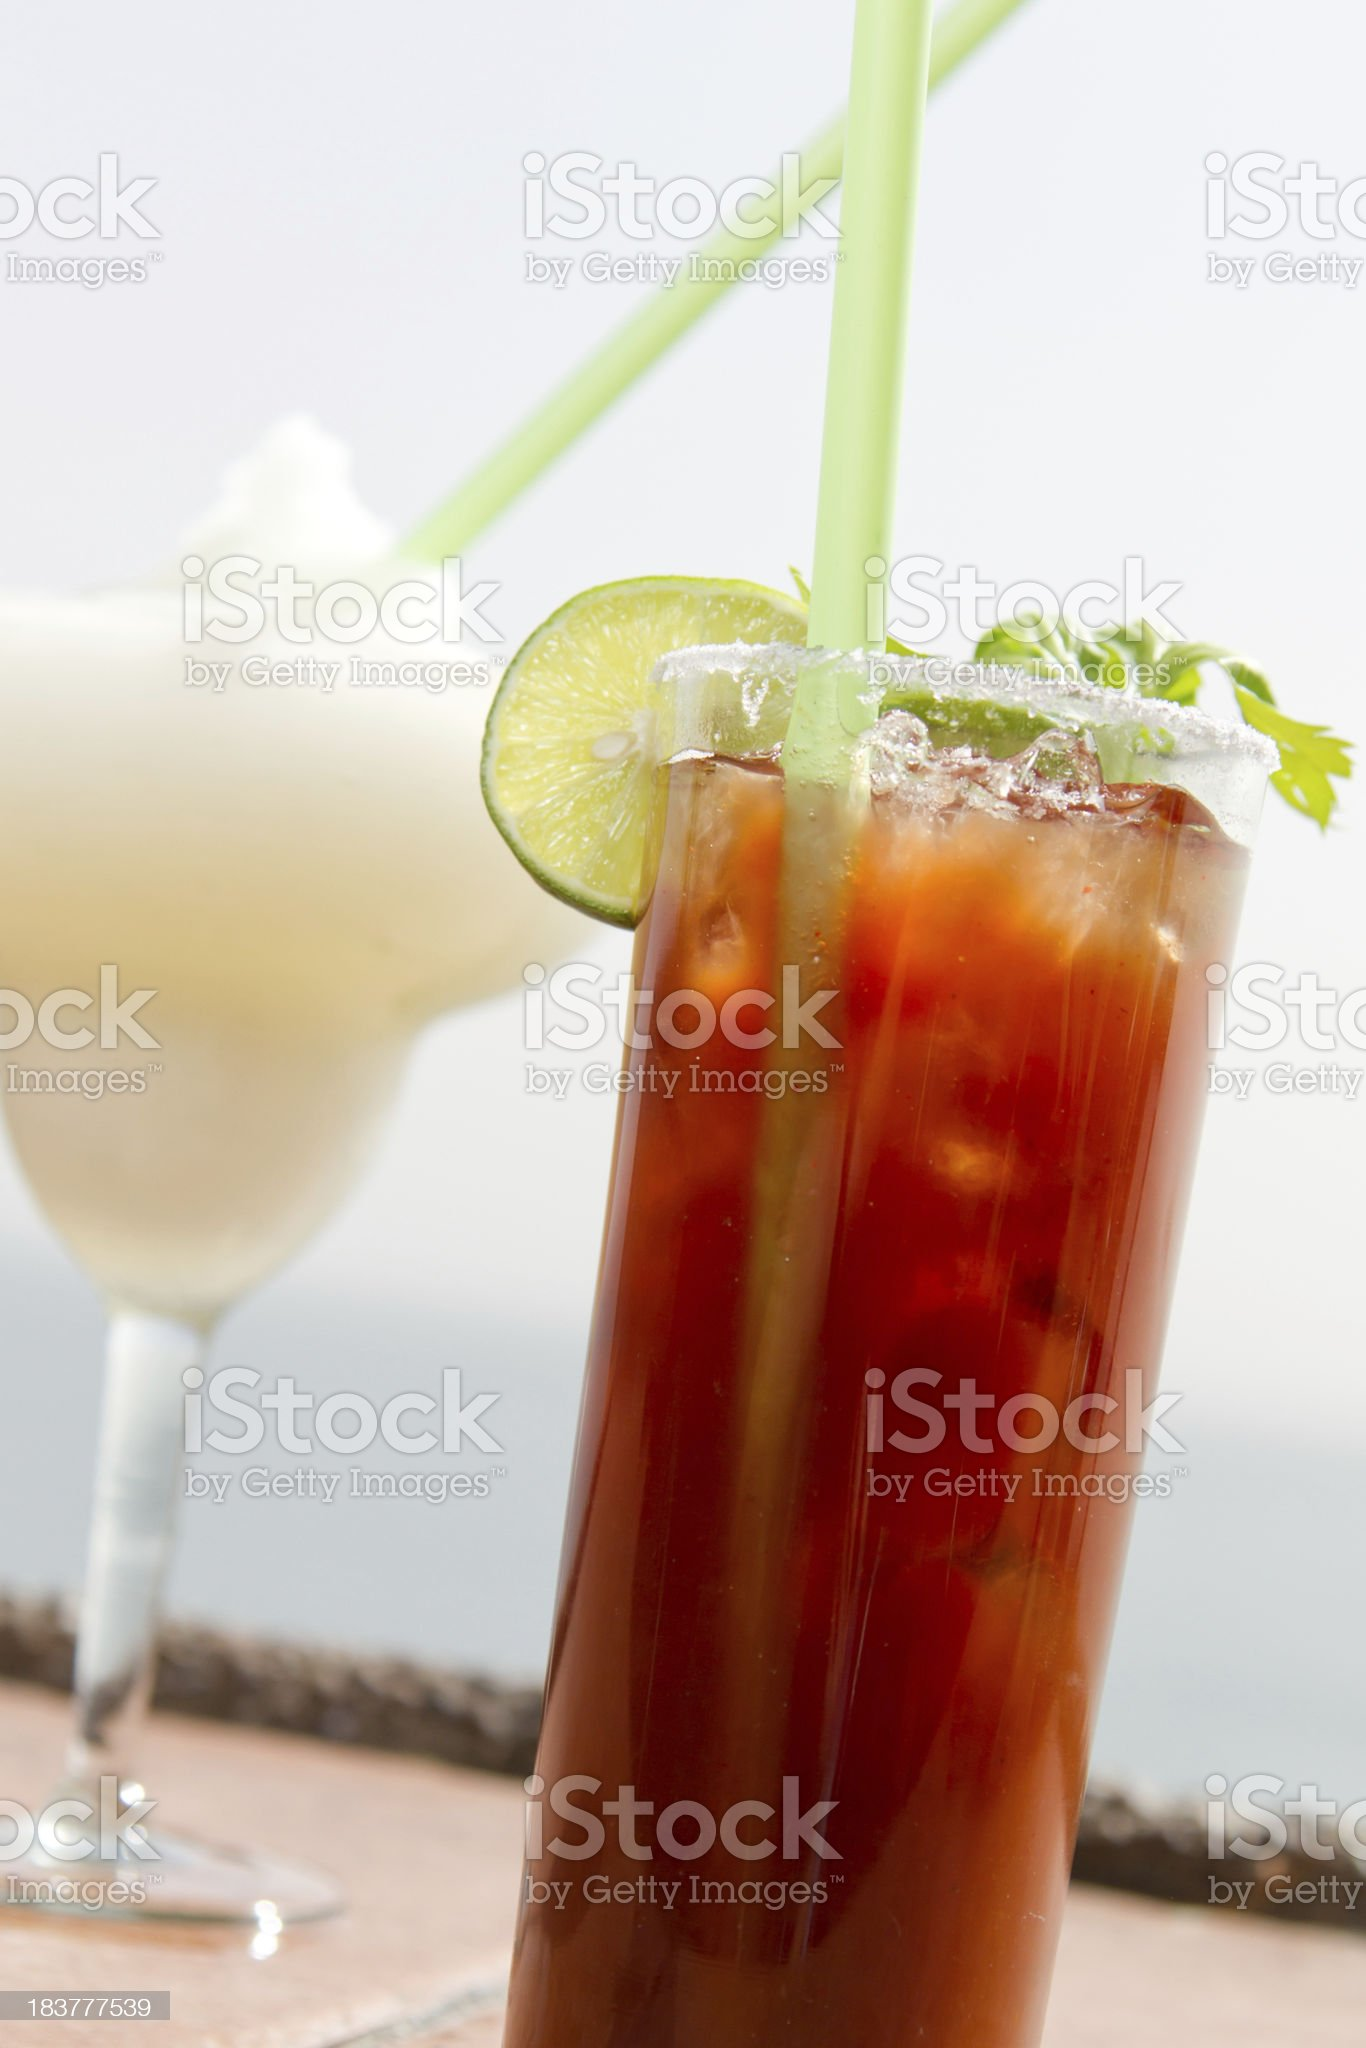 Tropical Drinks royalty-free stock photo